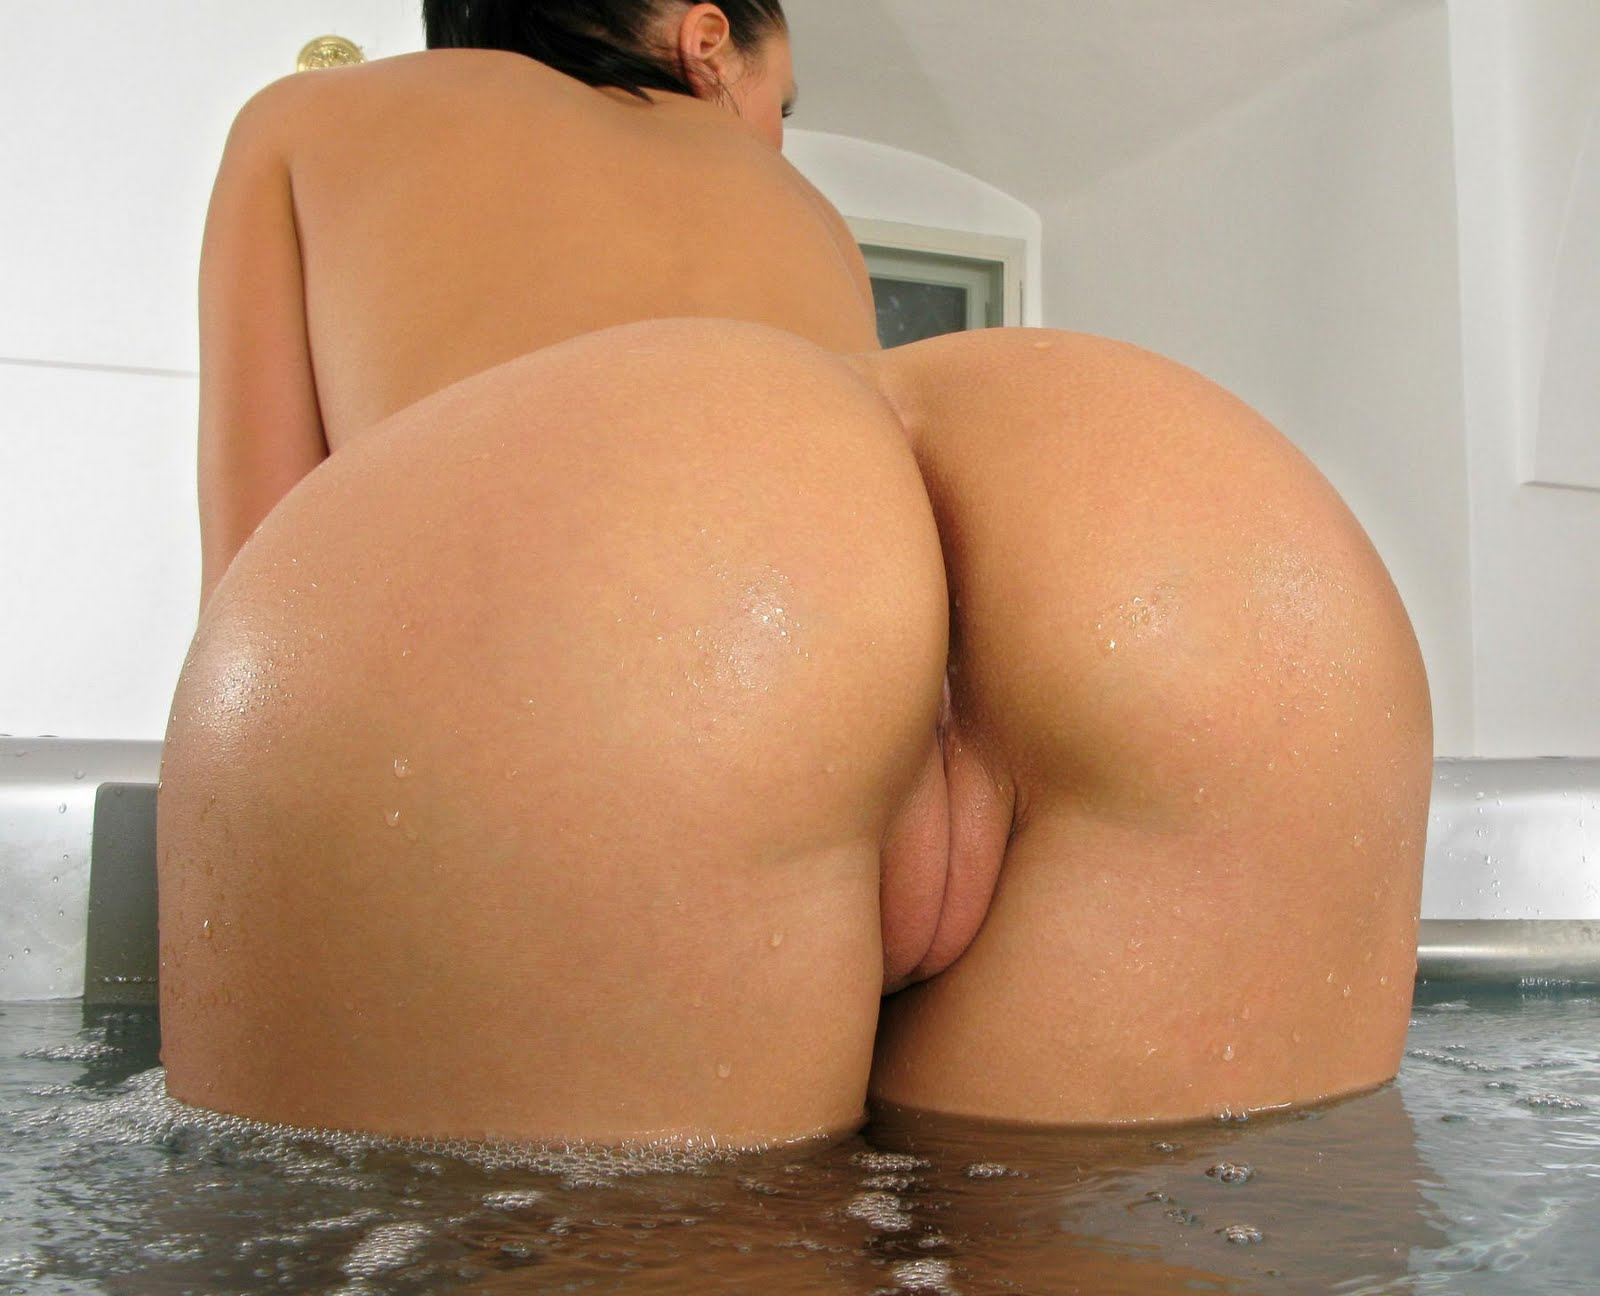 Big ass hd